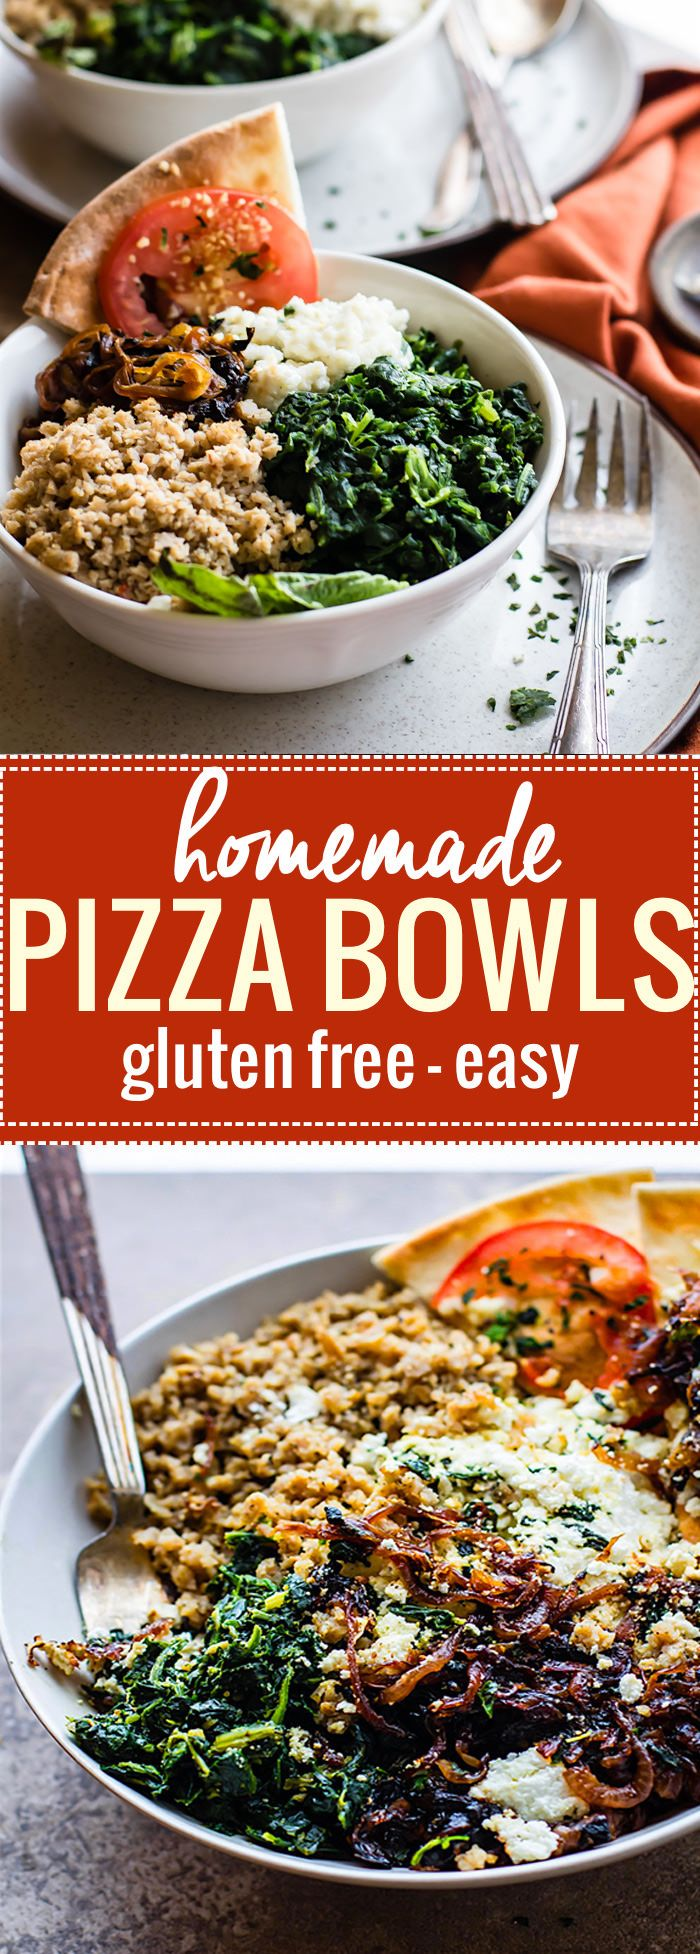 Gluten Free Homemade Pizza Bowls! These Easy homemade Pizza Bowls are a super fun way to share and customize pizza. Just fill it with all your favorite gourmet pizza toppings! Caramelized onion, goat cheese, spinach, and more. Healthy, easy, delish!! www.cottercrunch.com @cottercrunch.